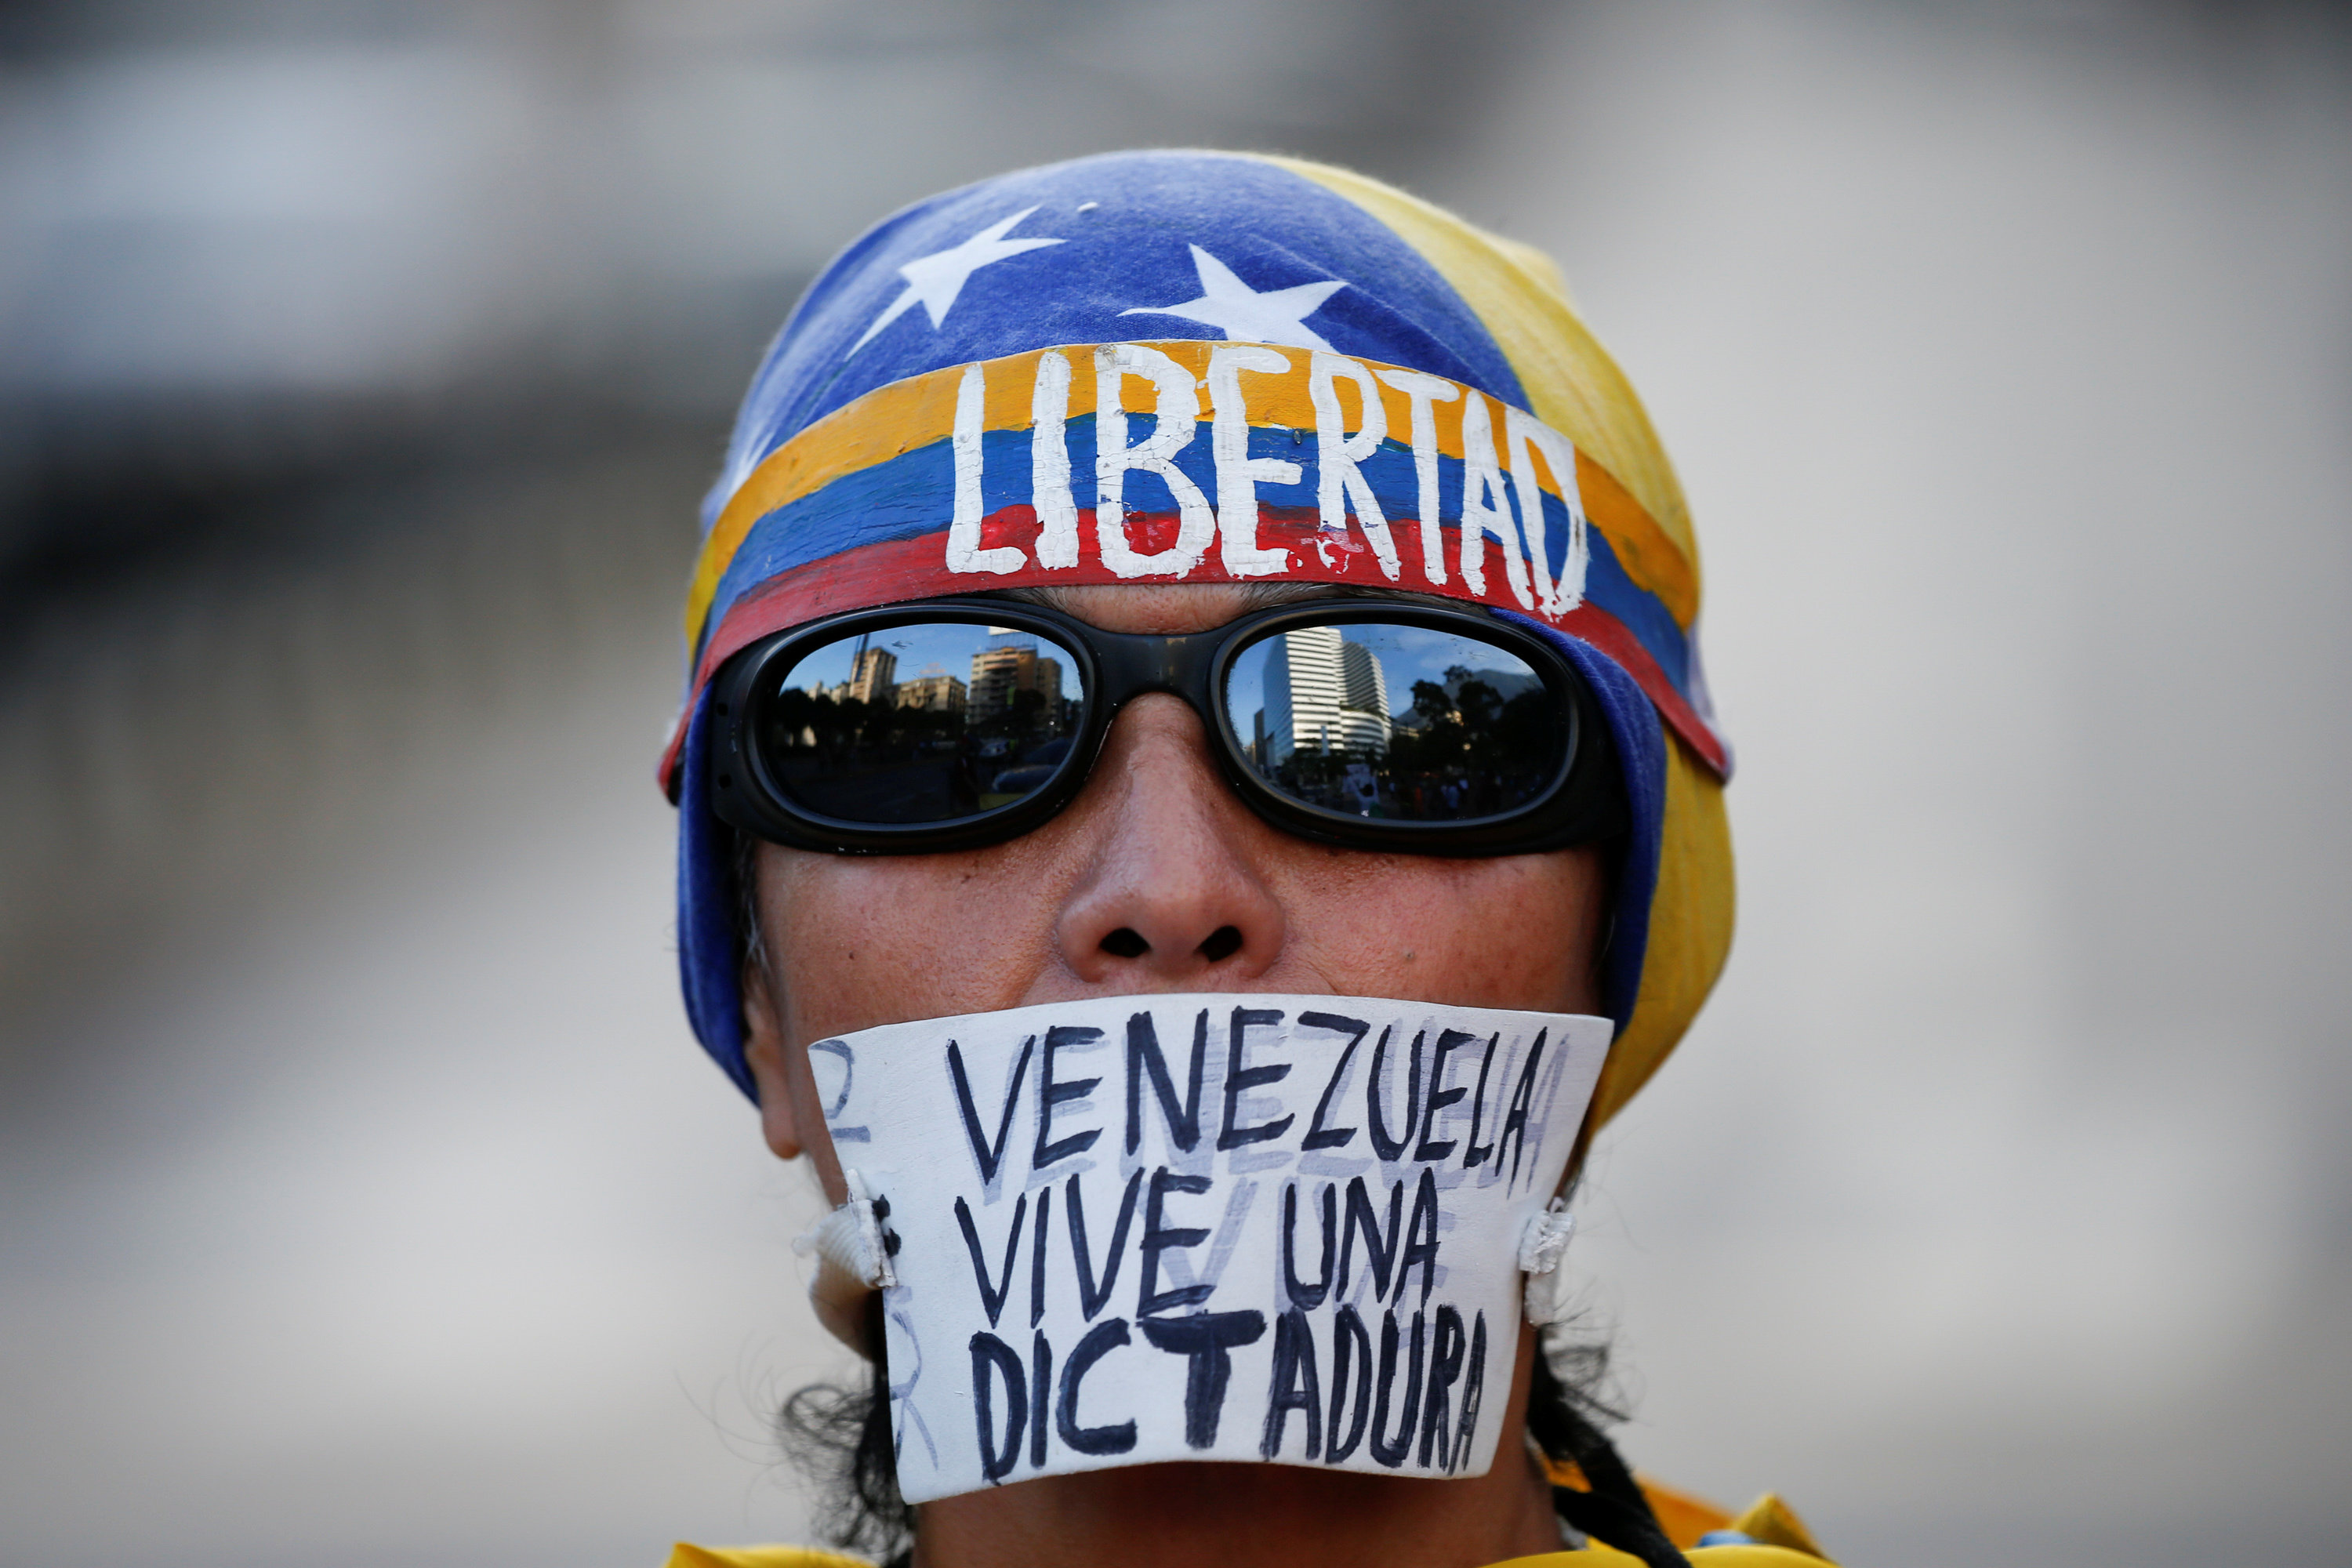 """An opposition supporter with a sign that reads, """"Venezuela lives a dictatorship"""", take part in a protest against Venezuelan President Nicolas Maduro's government in Caracas, Venezuela March 31, 2017. (REUTERS/Carlos Garcia Rawlins)"""